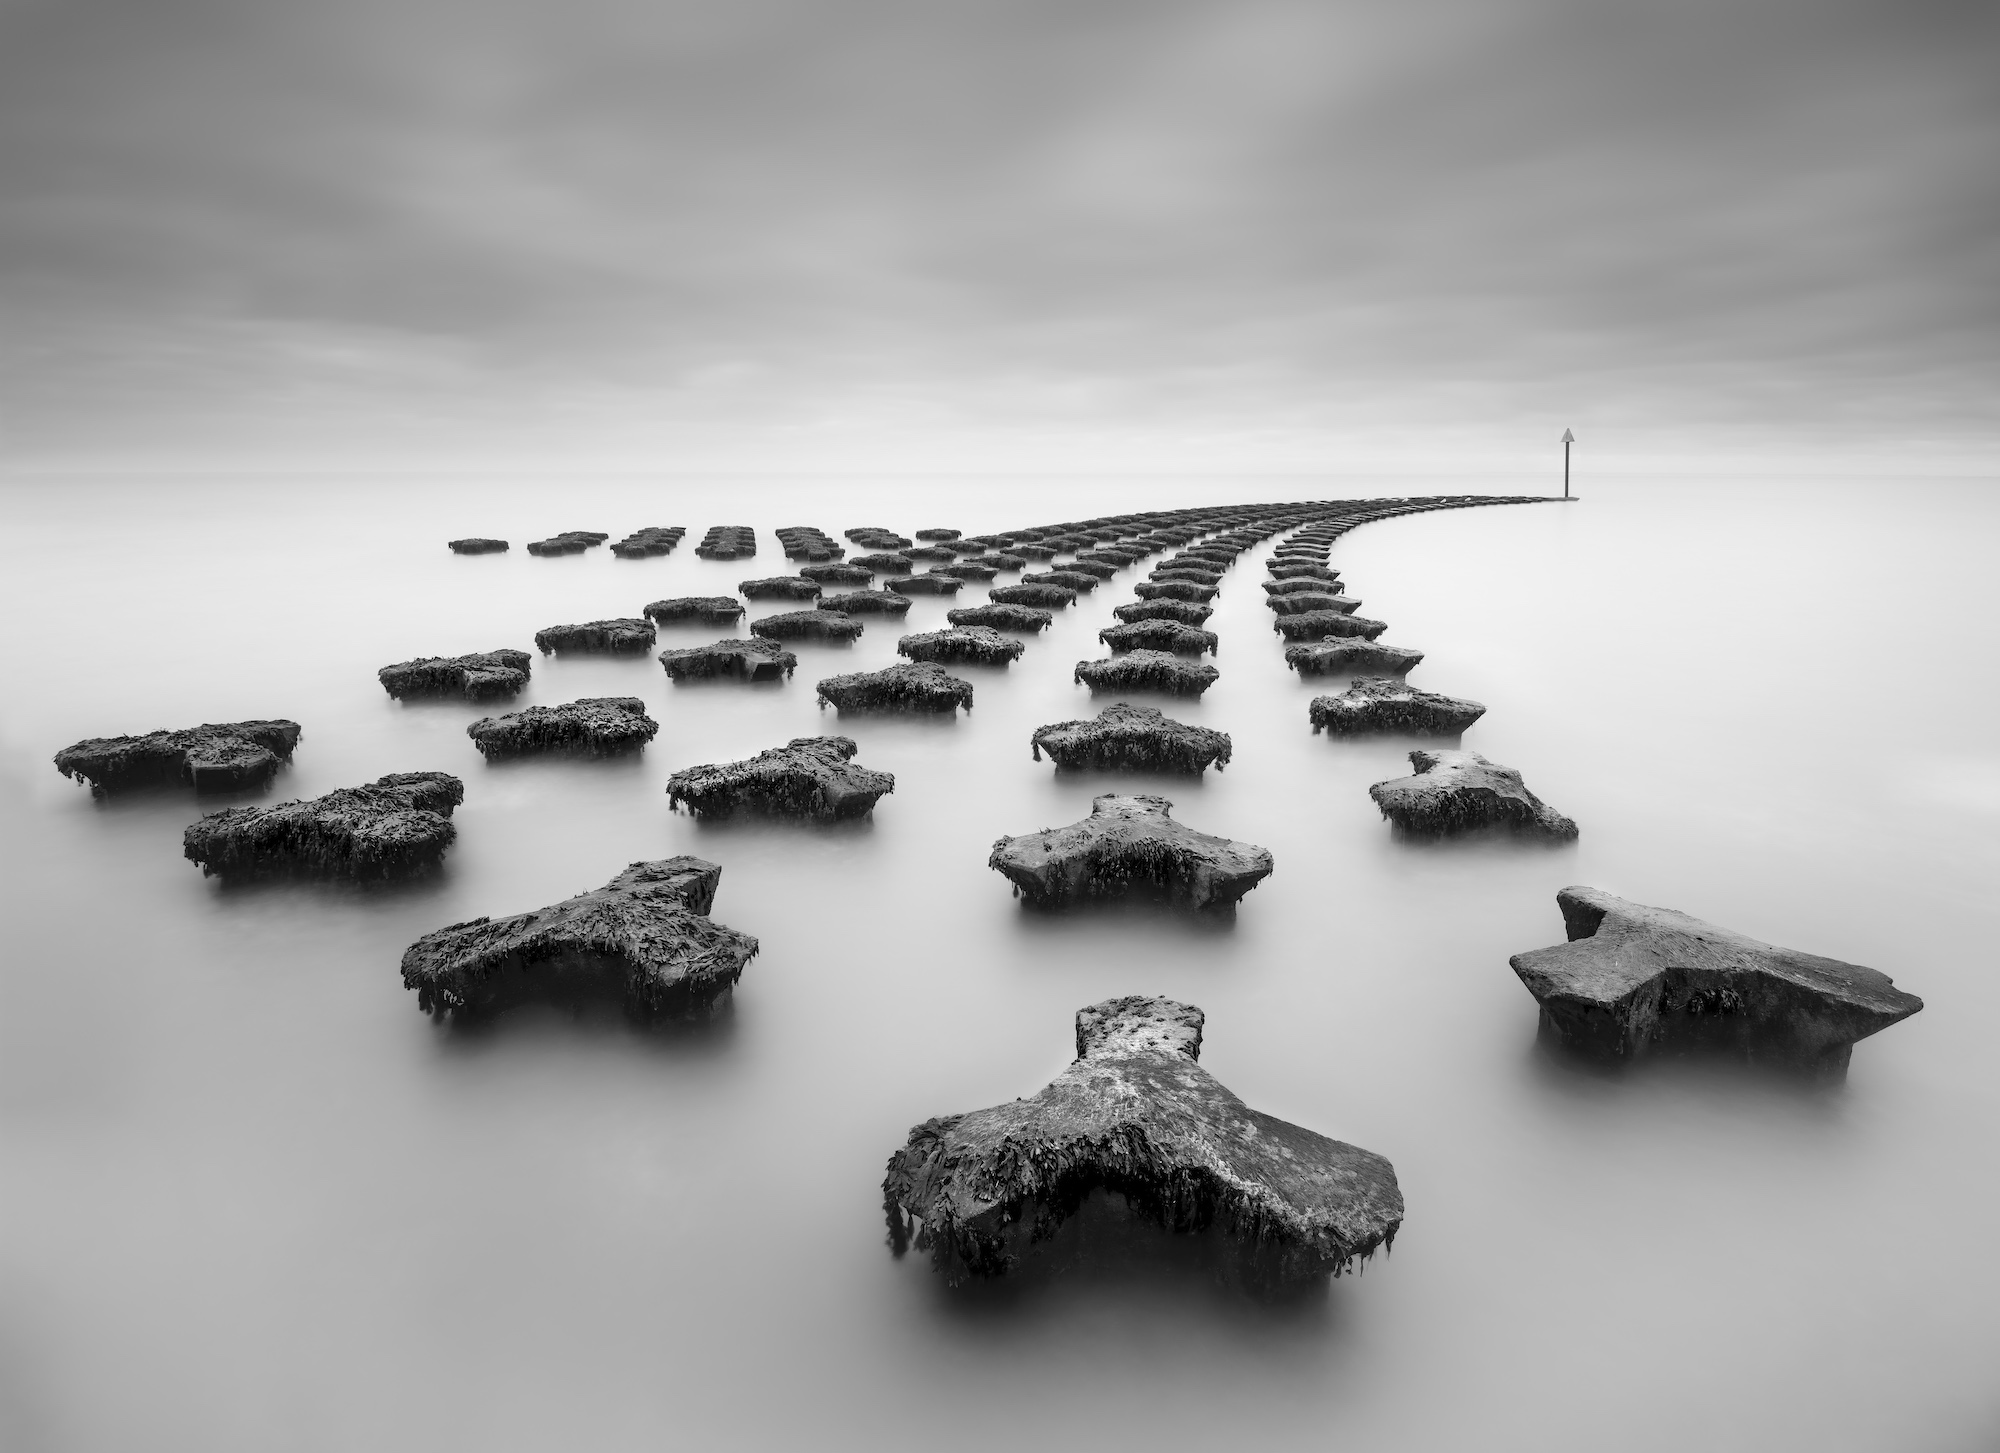 Long exposure image of the curved sea defenses at Felixstowe, England